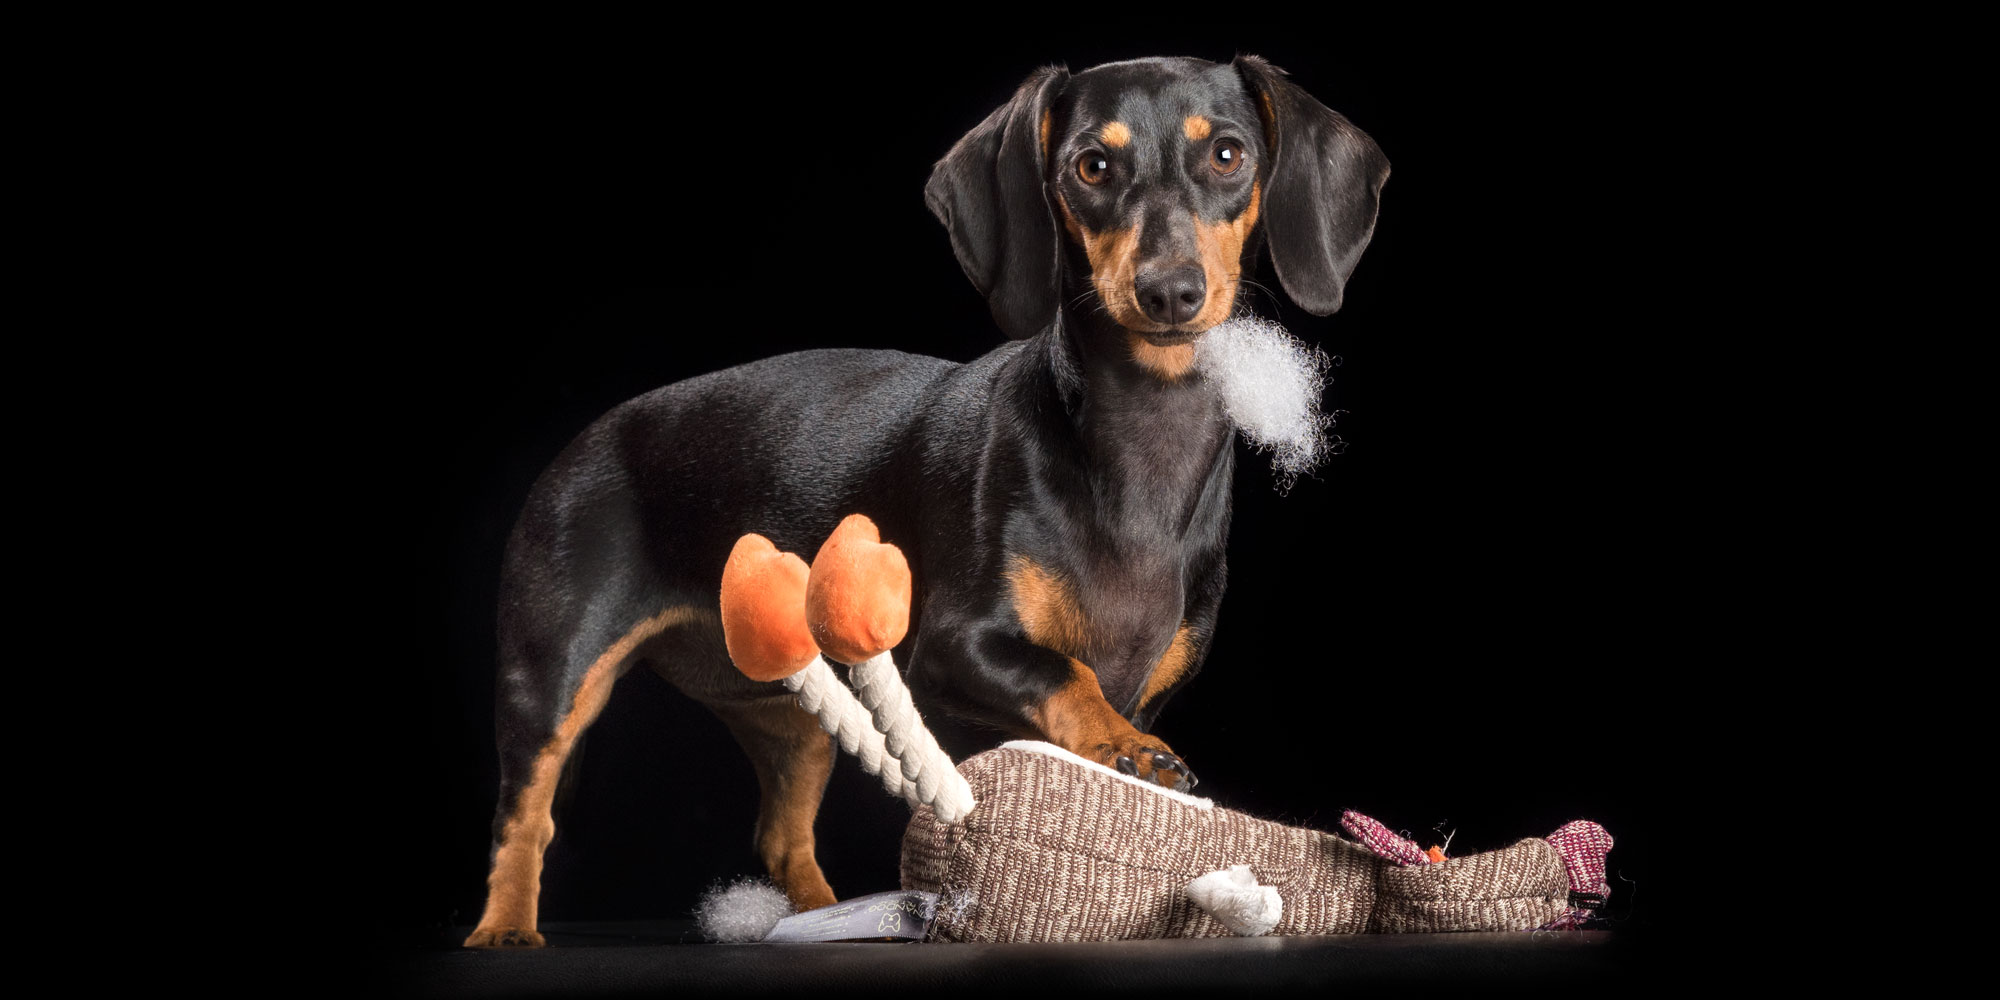 stuffed toy being unstuffed by dachshund girl